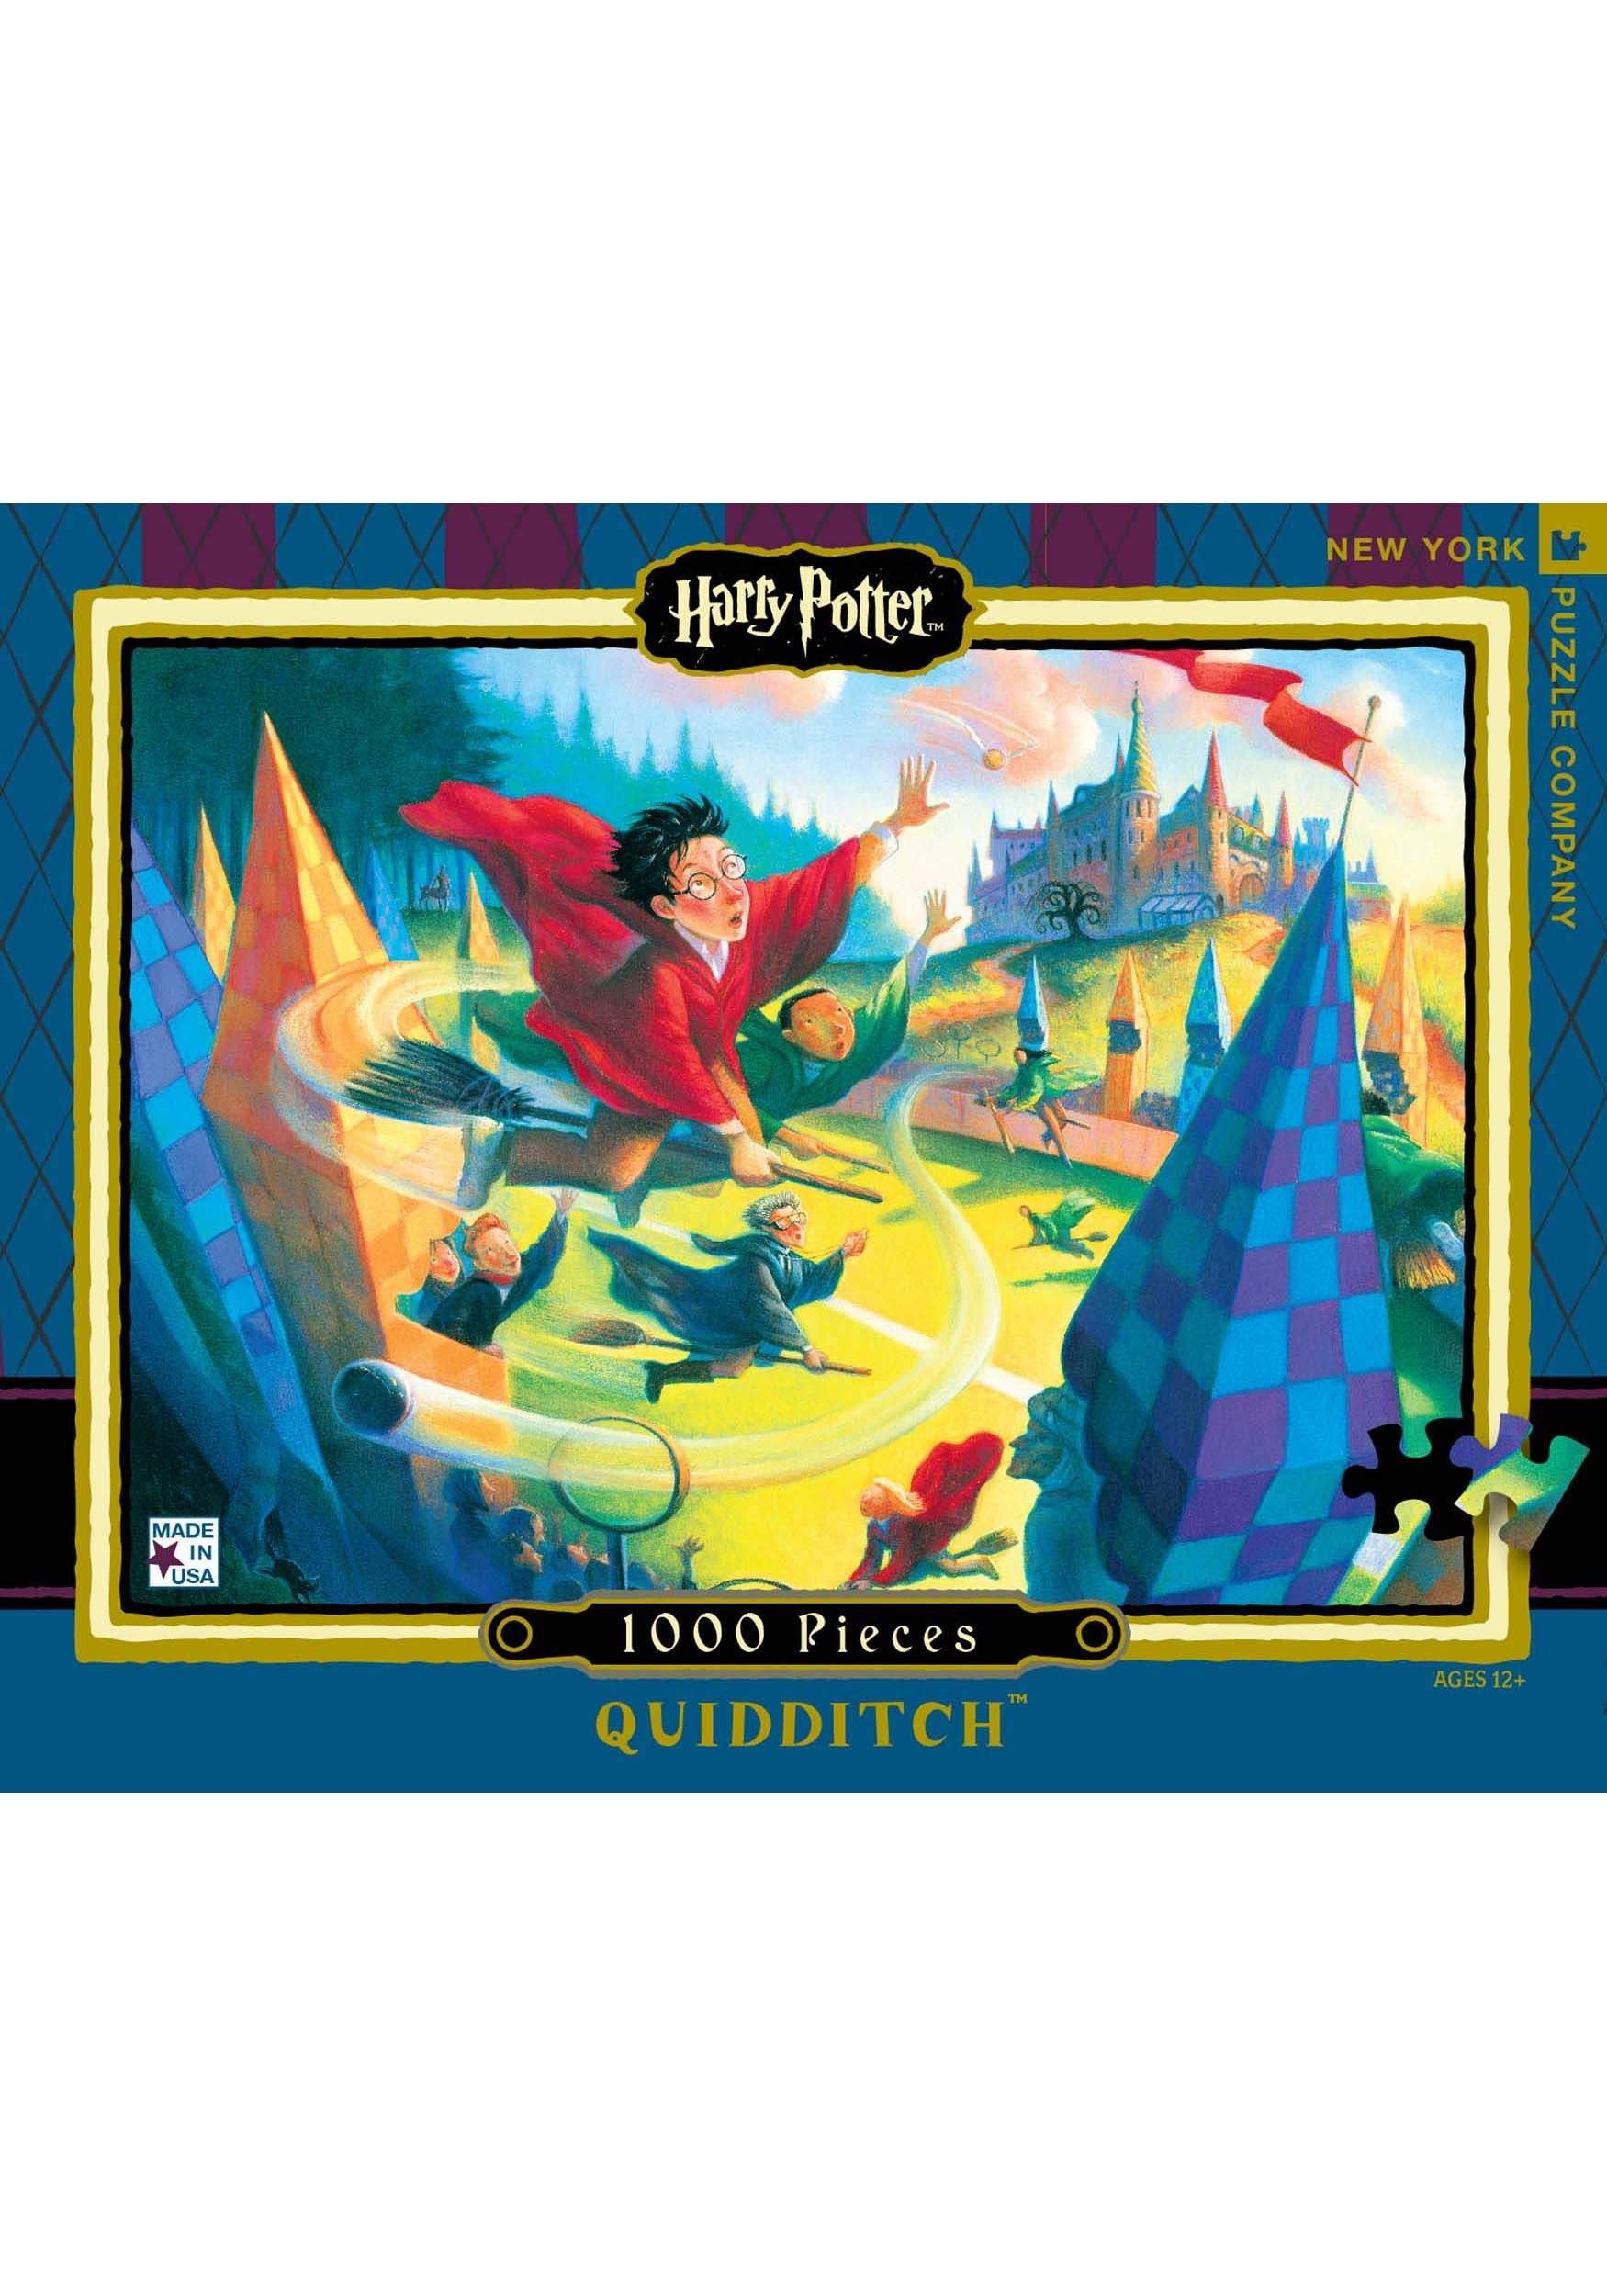 Harry Potter Quidditch 1000 pc Puzzle NYPHP1361